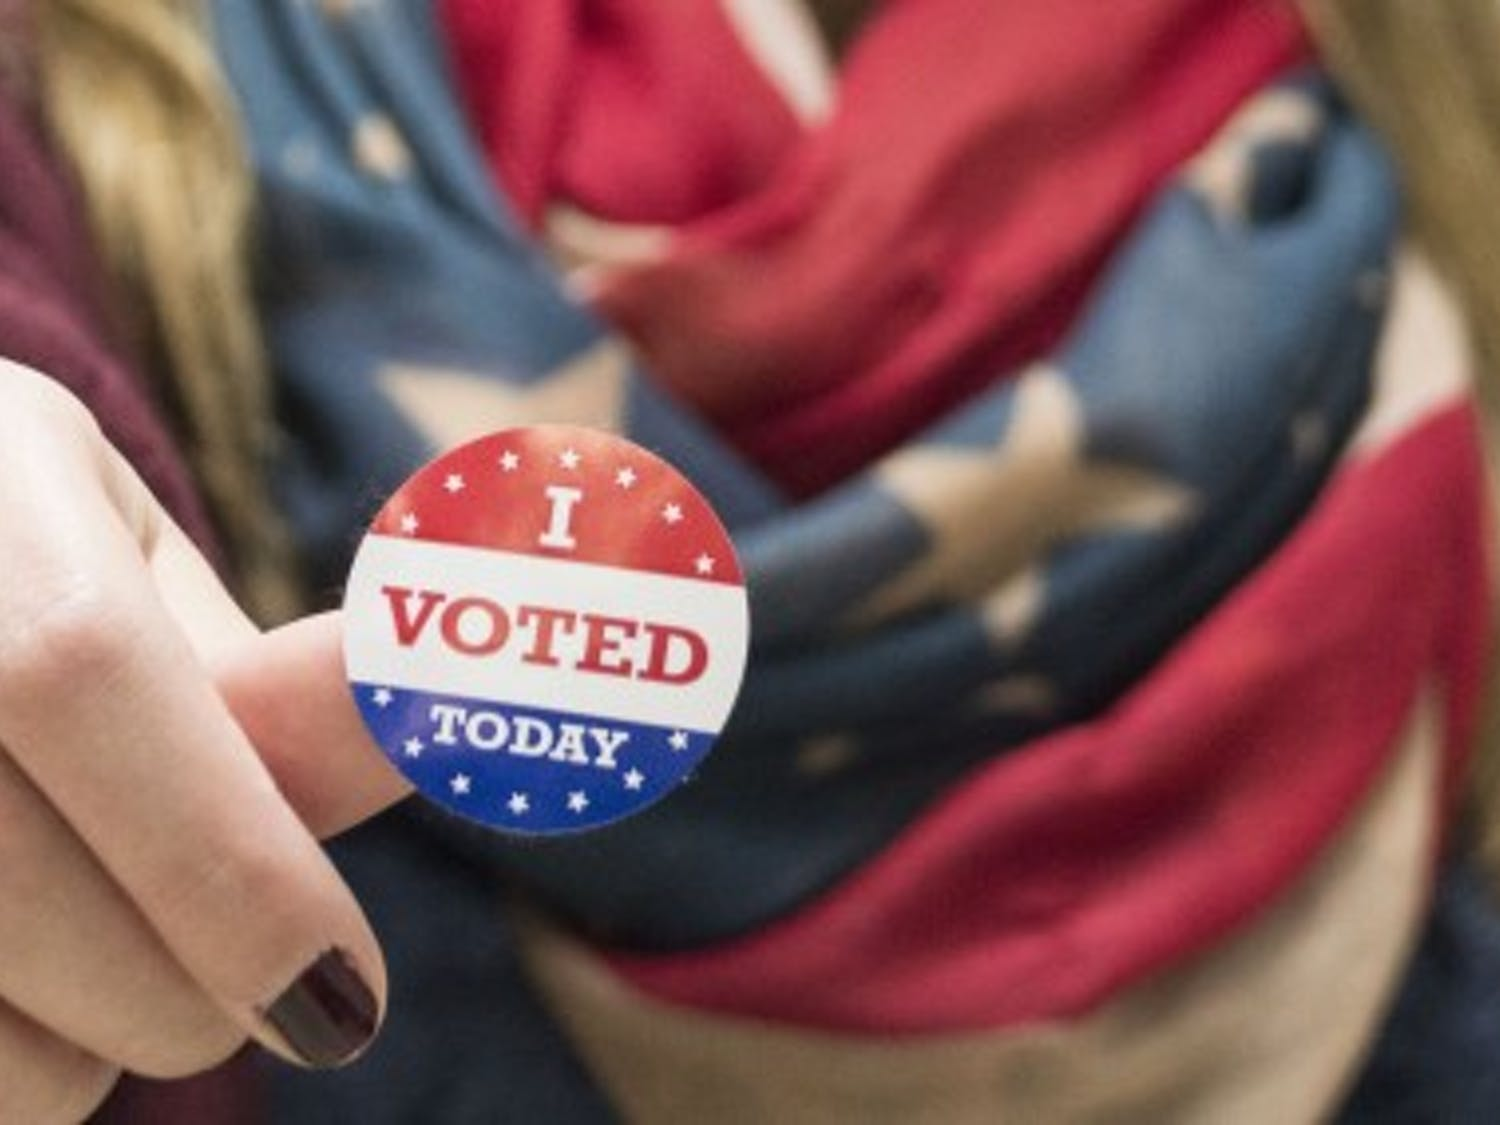 Voters in Wisconsin are required to show photo identification before they can vote. However, UW-Madison students cannot use their Wiscards as a proof of identity.